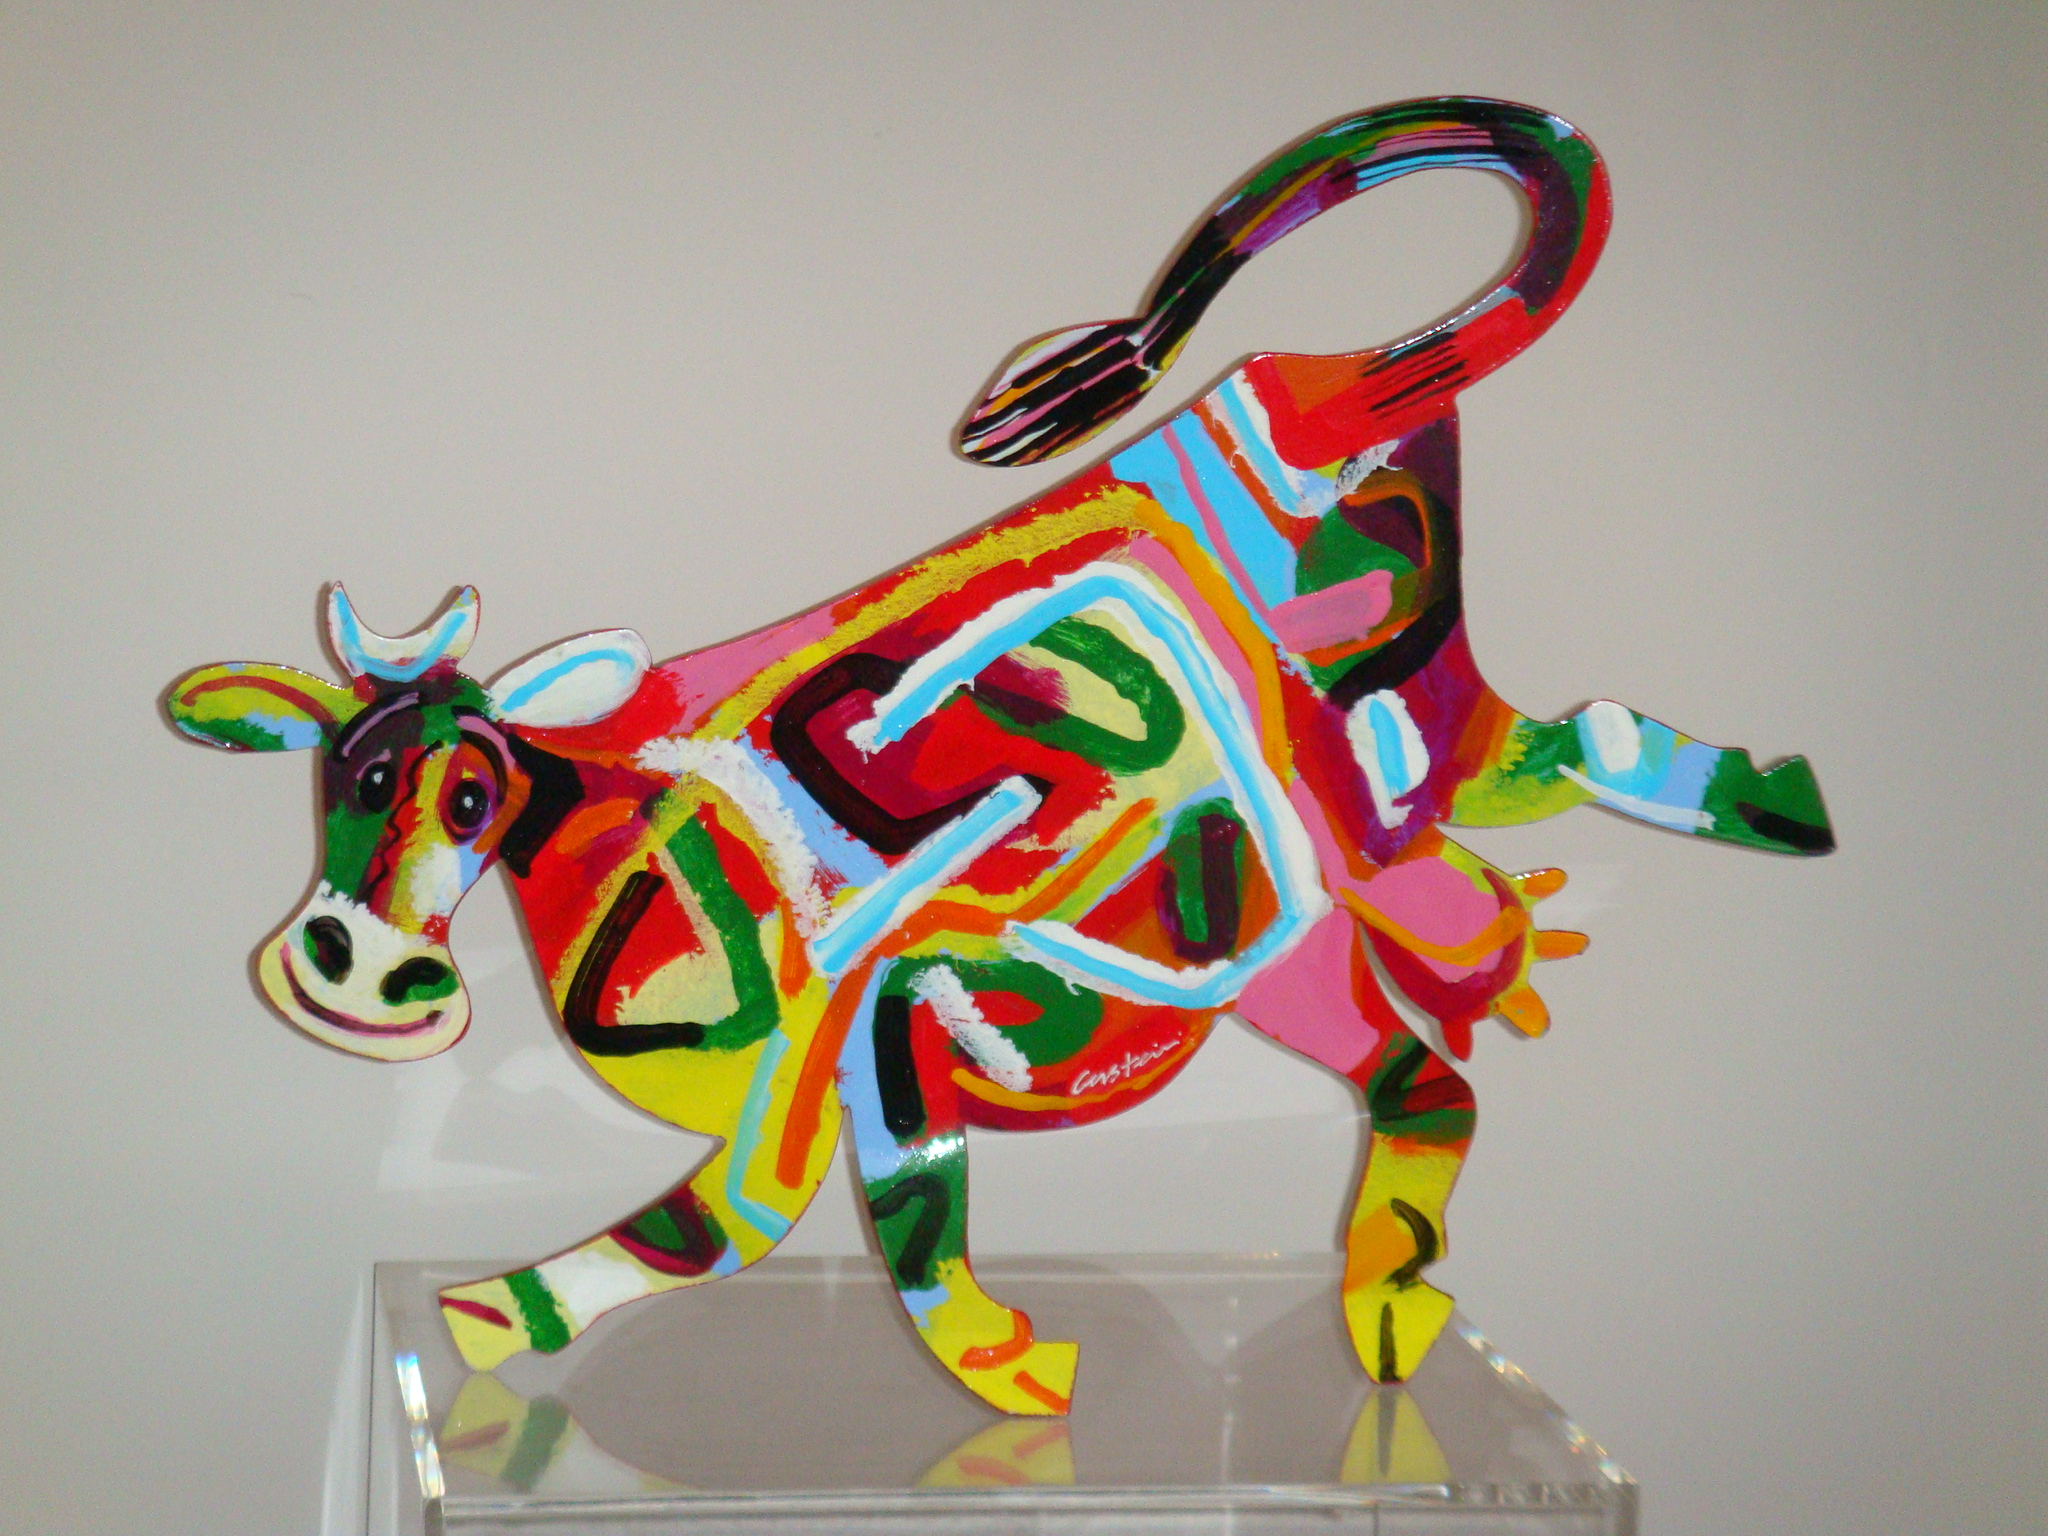 Medium Cow Sculpture 2008